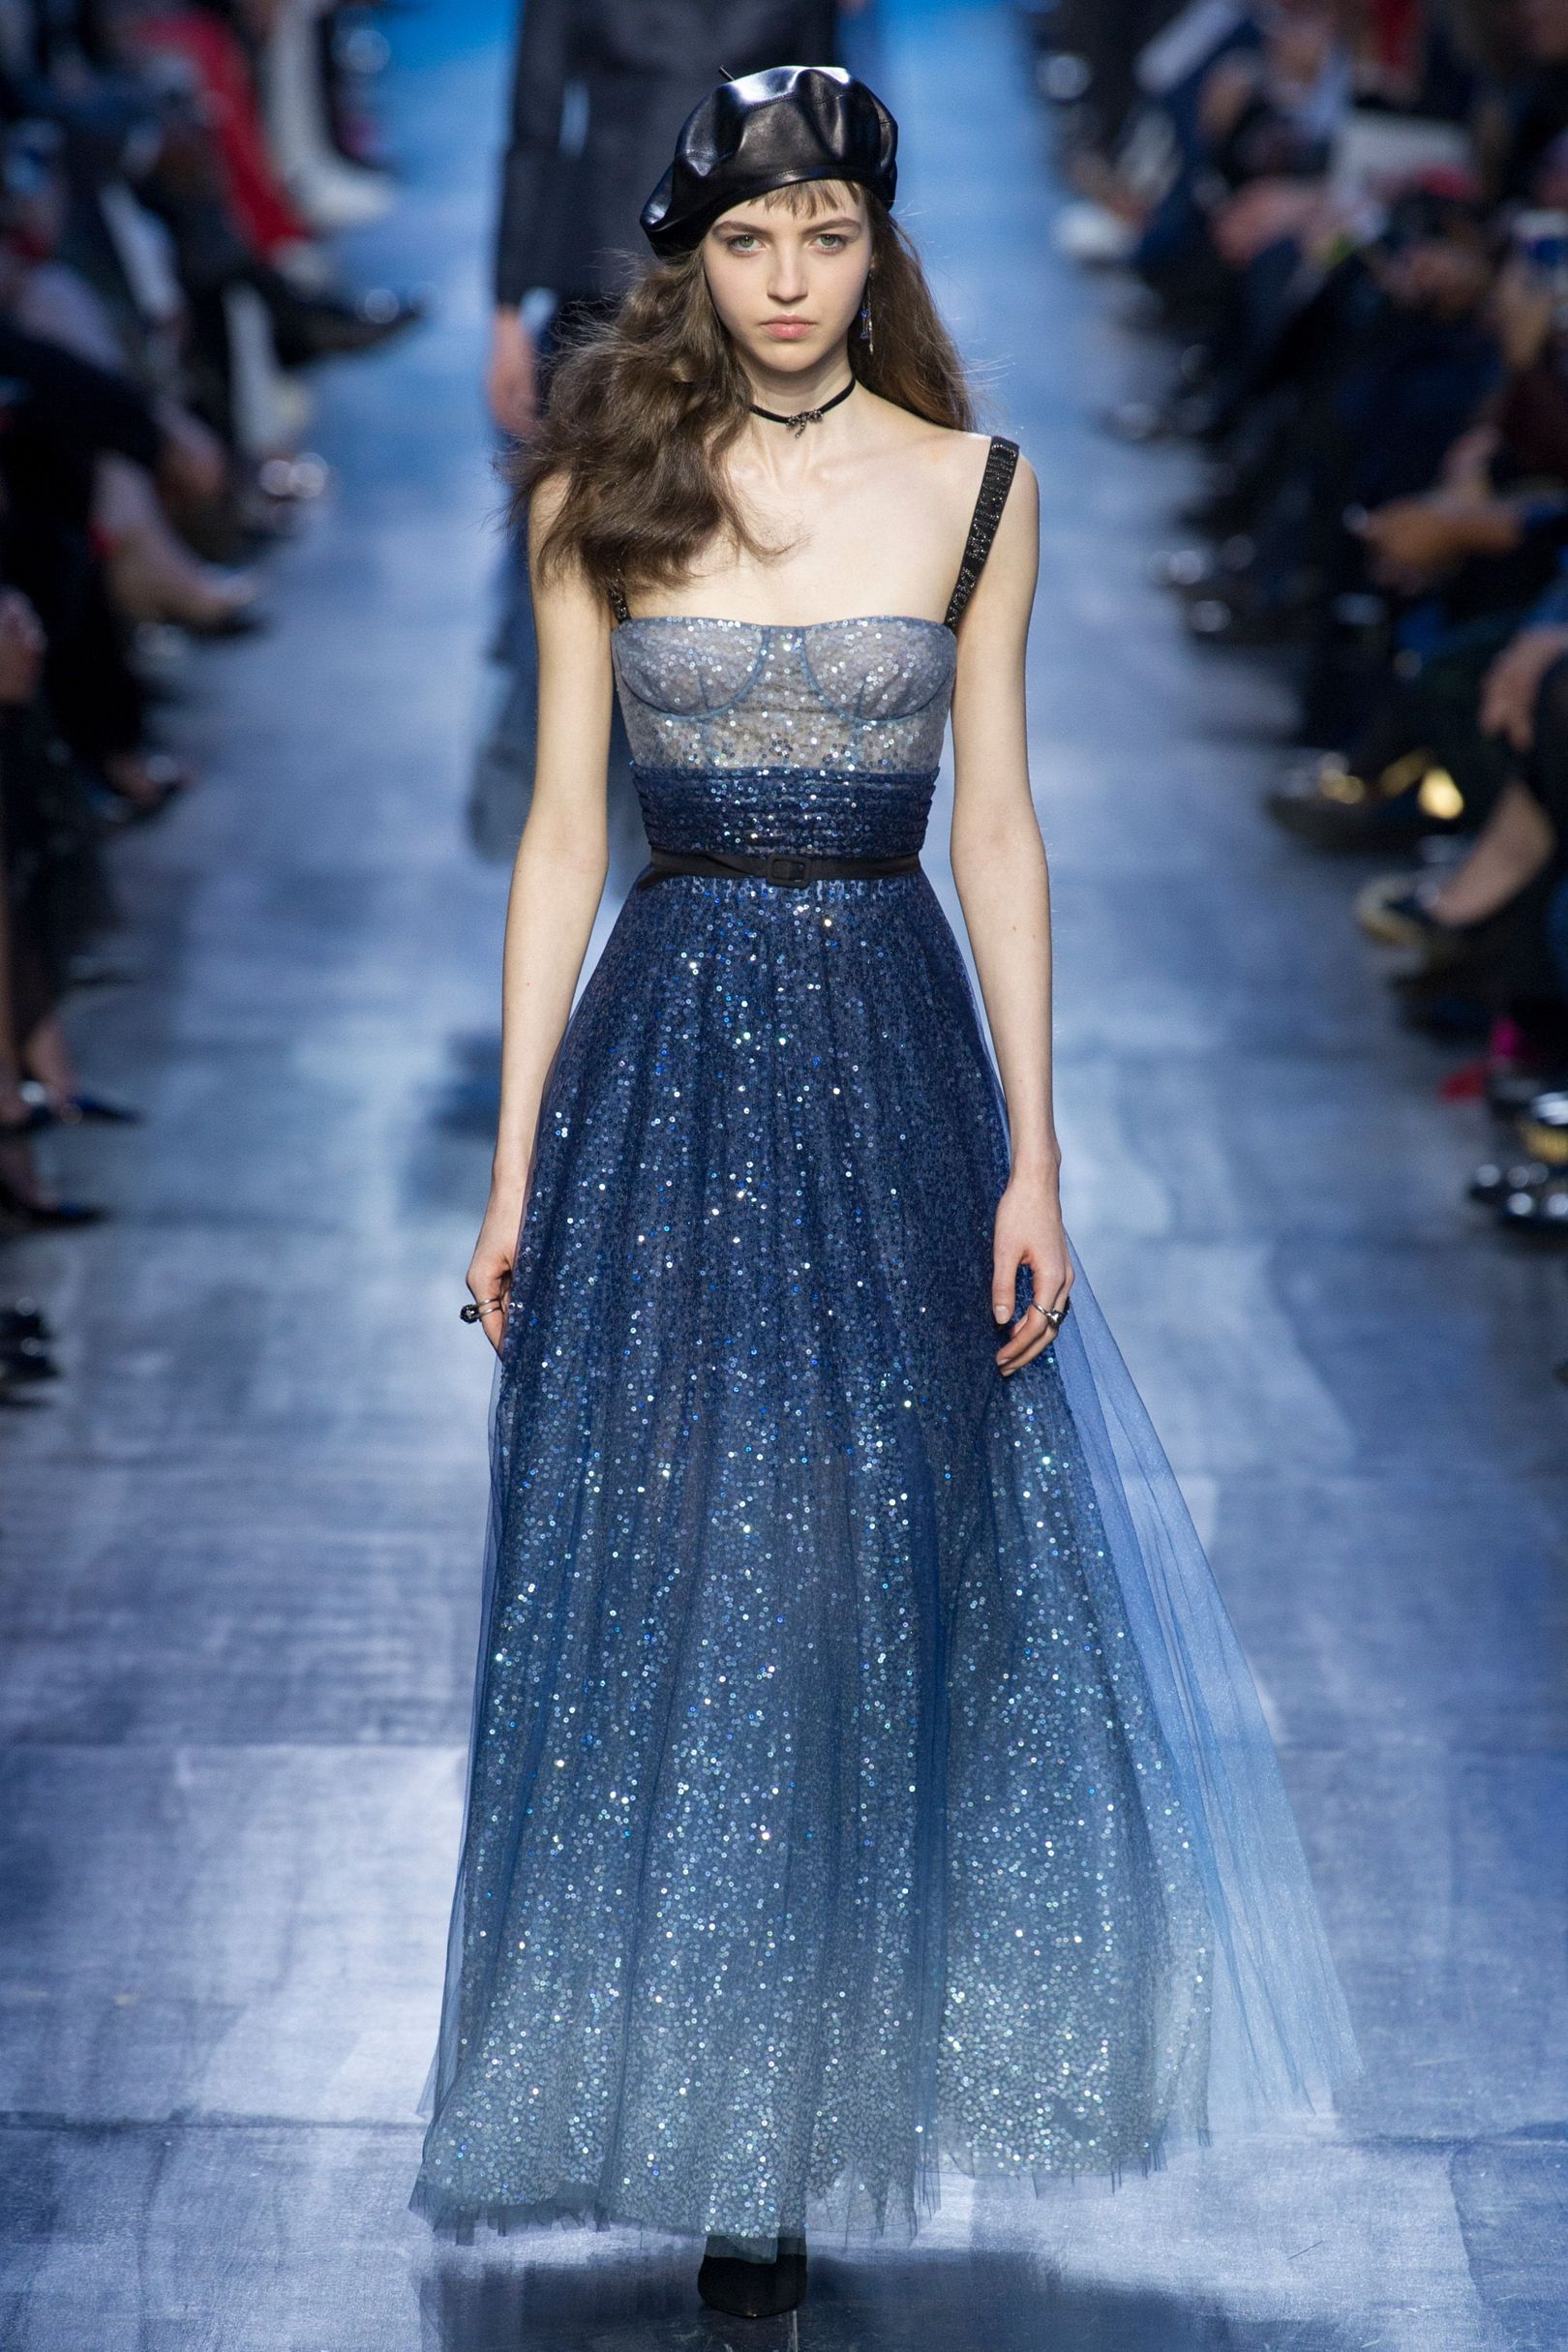 Christian Dior Autumn/Winter 2017 Ready to wear | Pinterest ...